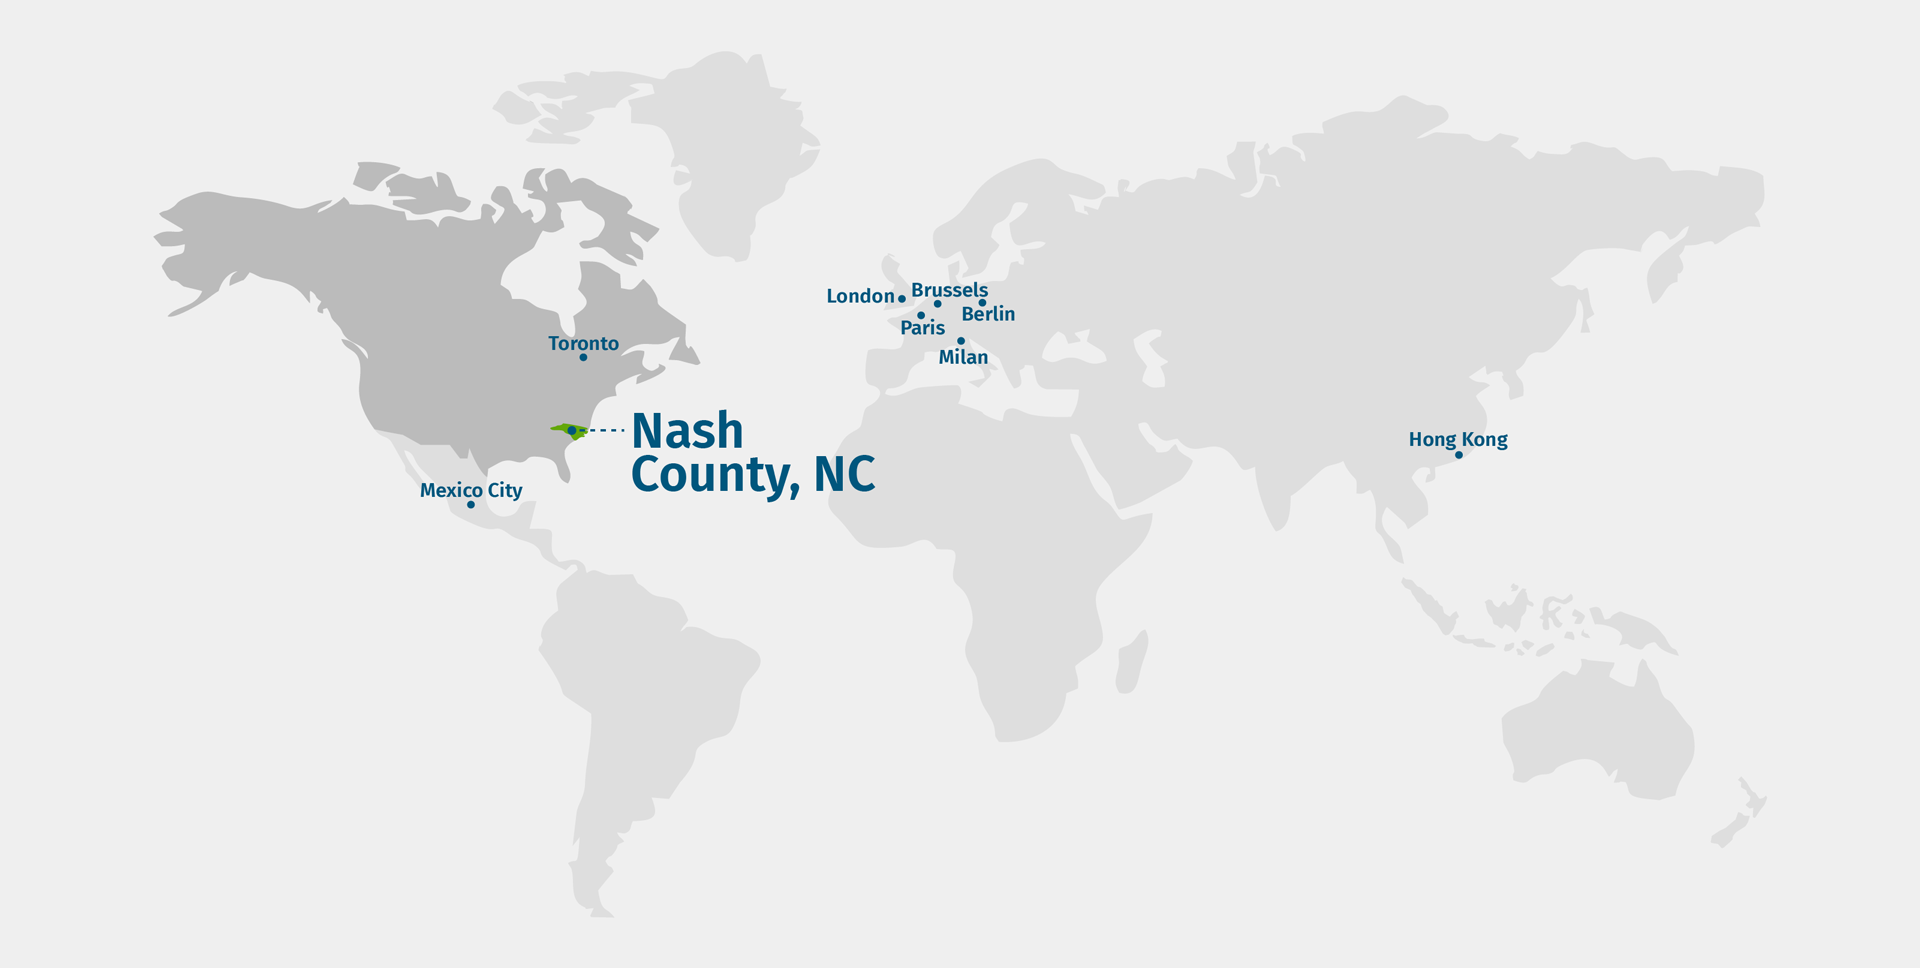 Nash County Global Map